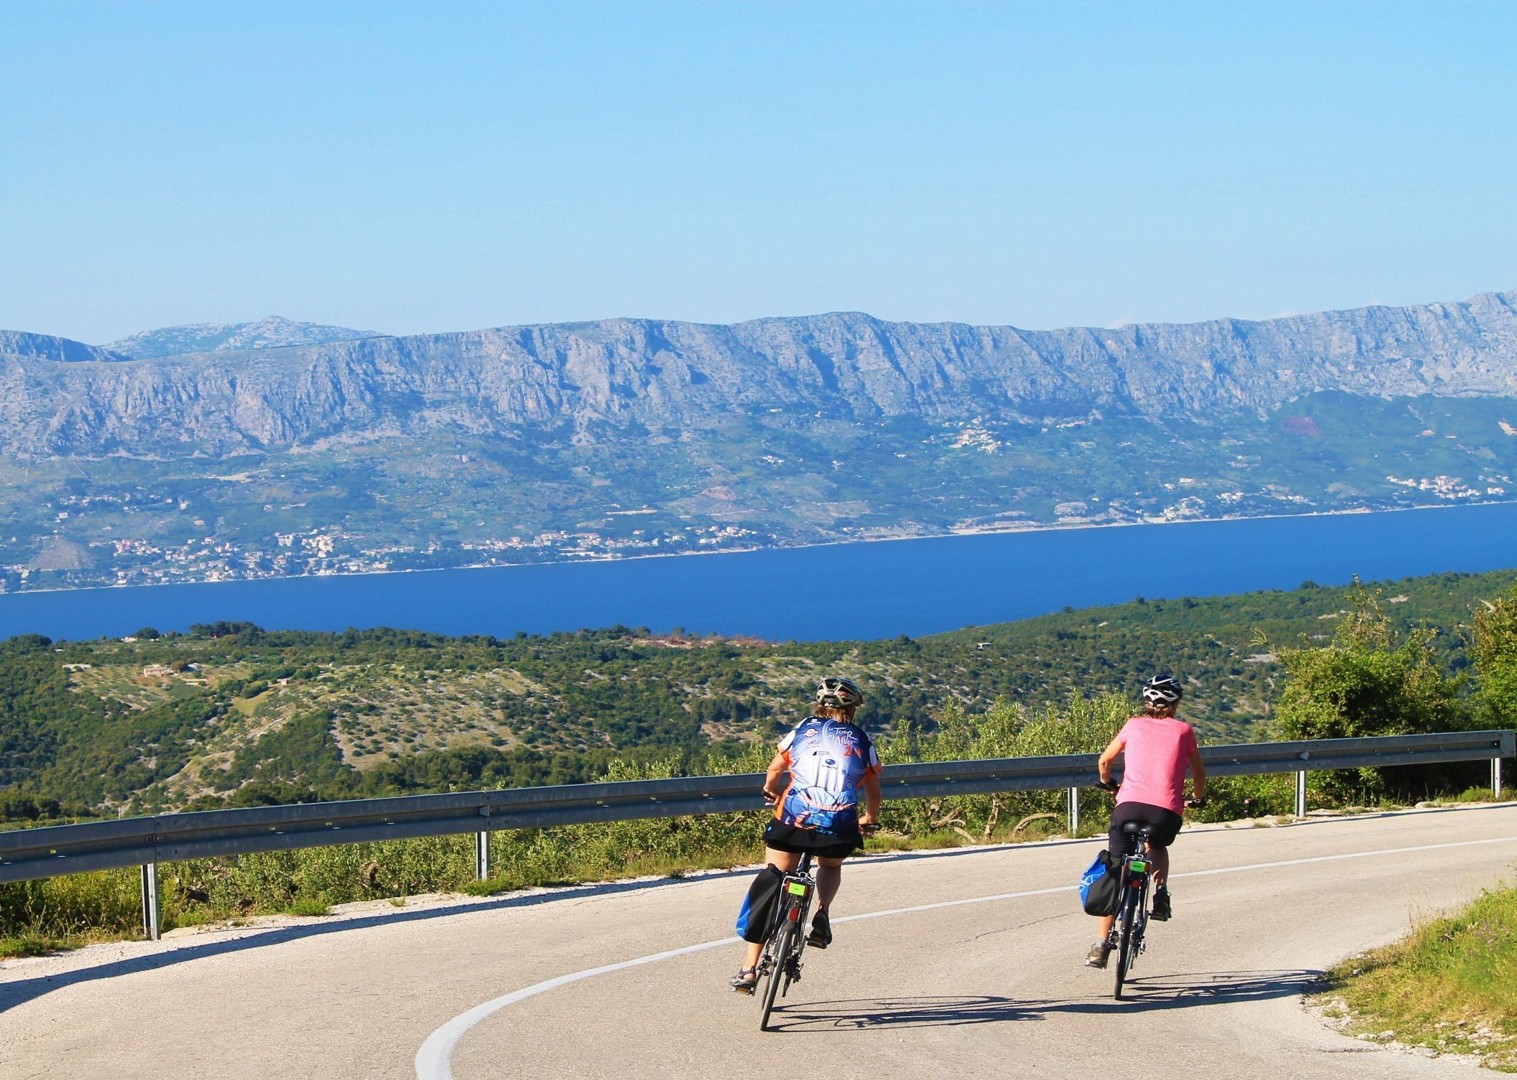 croatia-national-parks-bike-and-boat-ebike.jpg - Croatia - Dalmatian National Parks and Islands Plus - Bike and Boat Holiday - Leisure Cycling